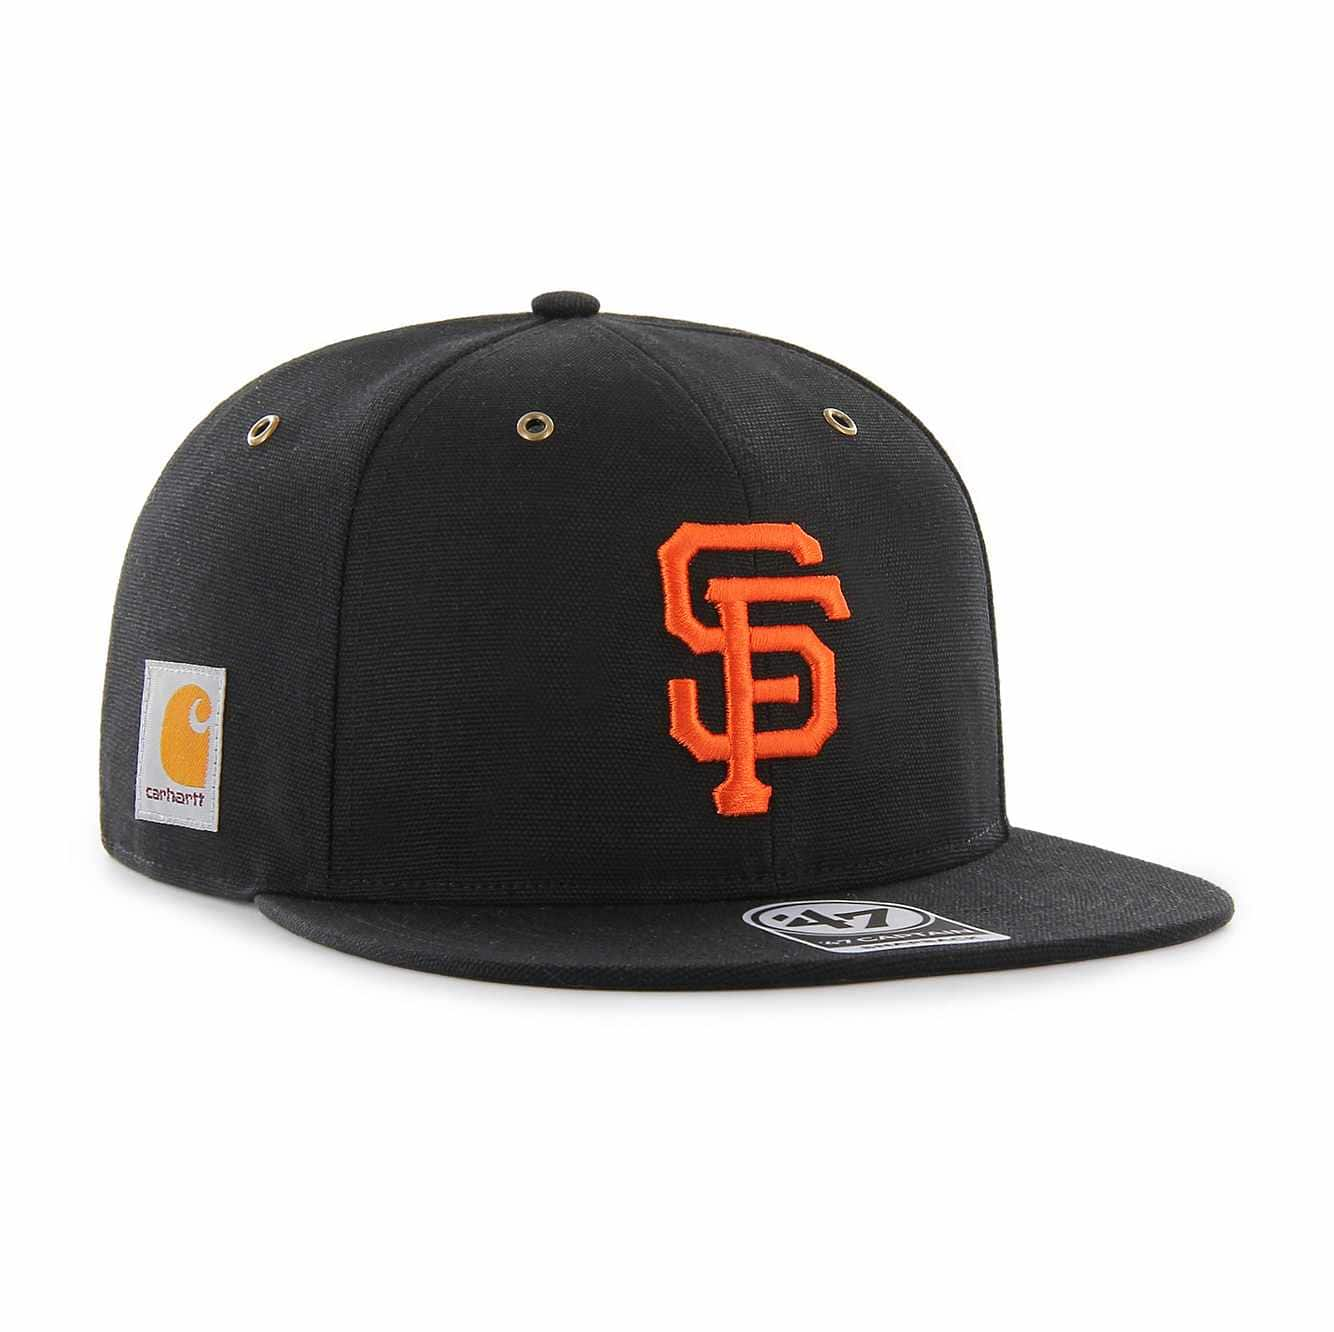 Picture of San Francisco Giants Carhartt x '47 Captain in Black